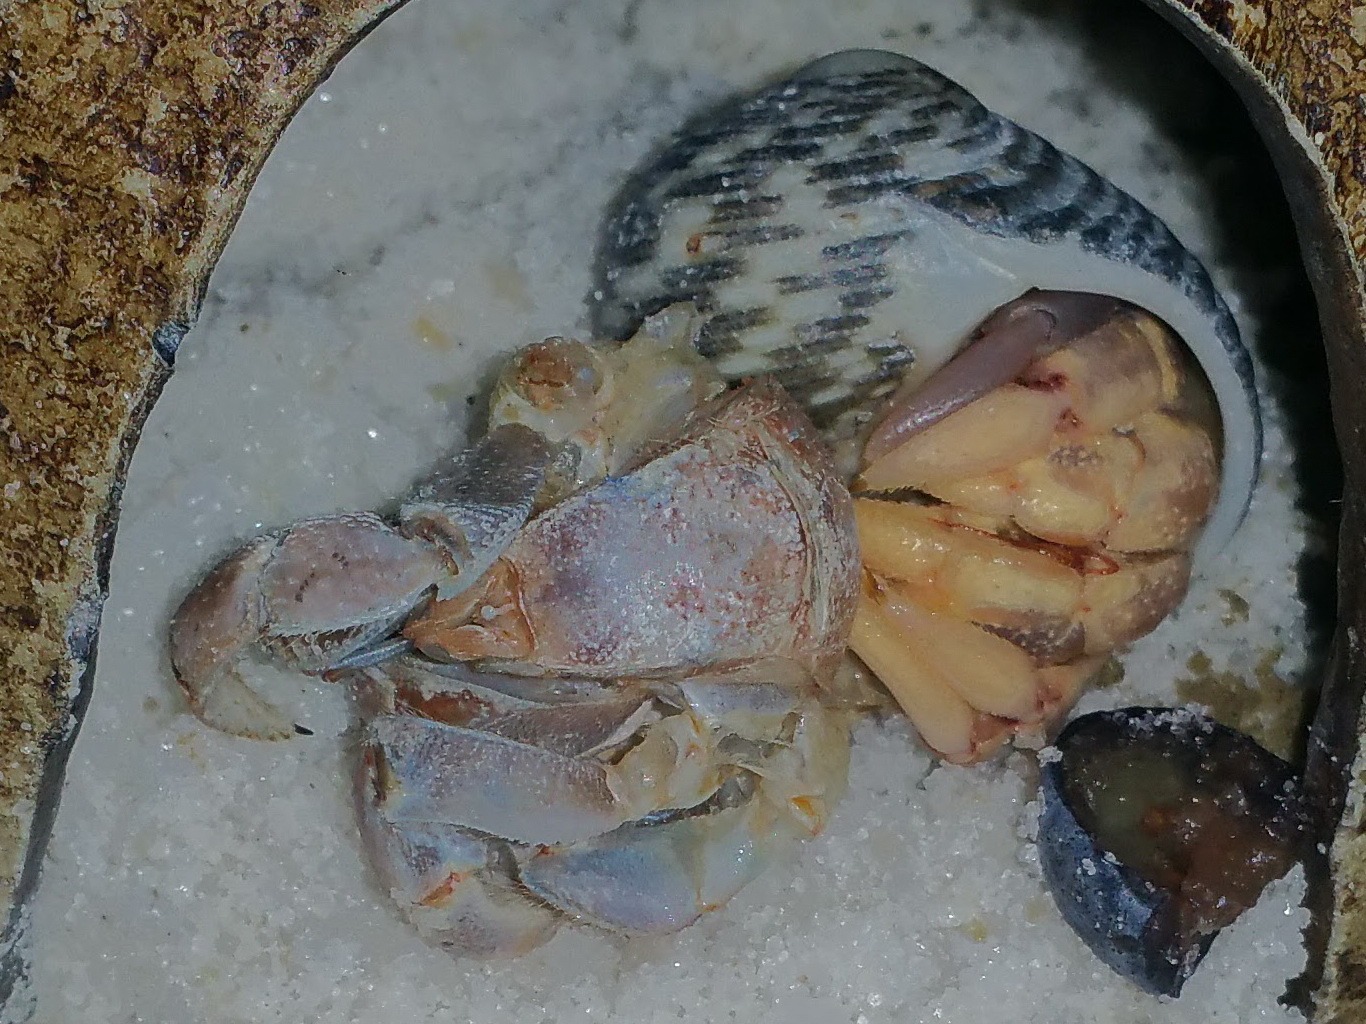 C. compressus surface molt. Top most leg is a newly regenerated limb.